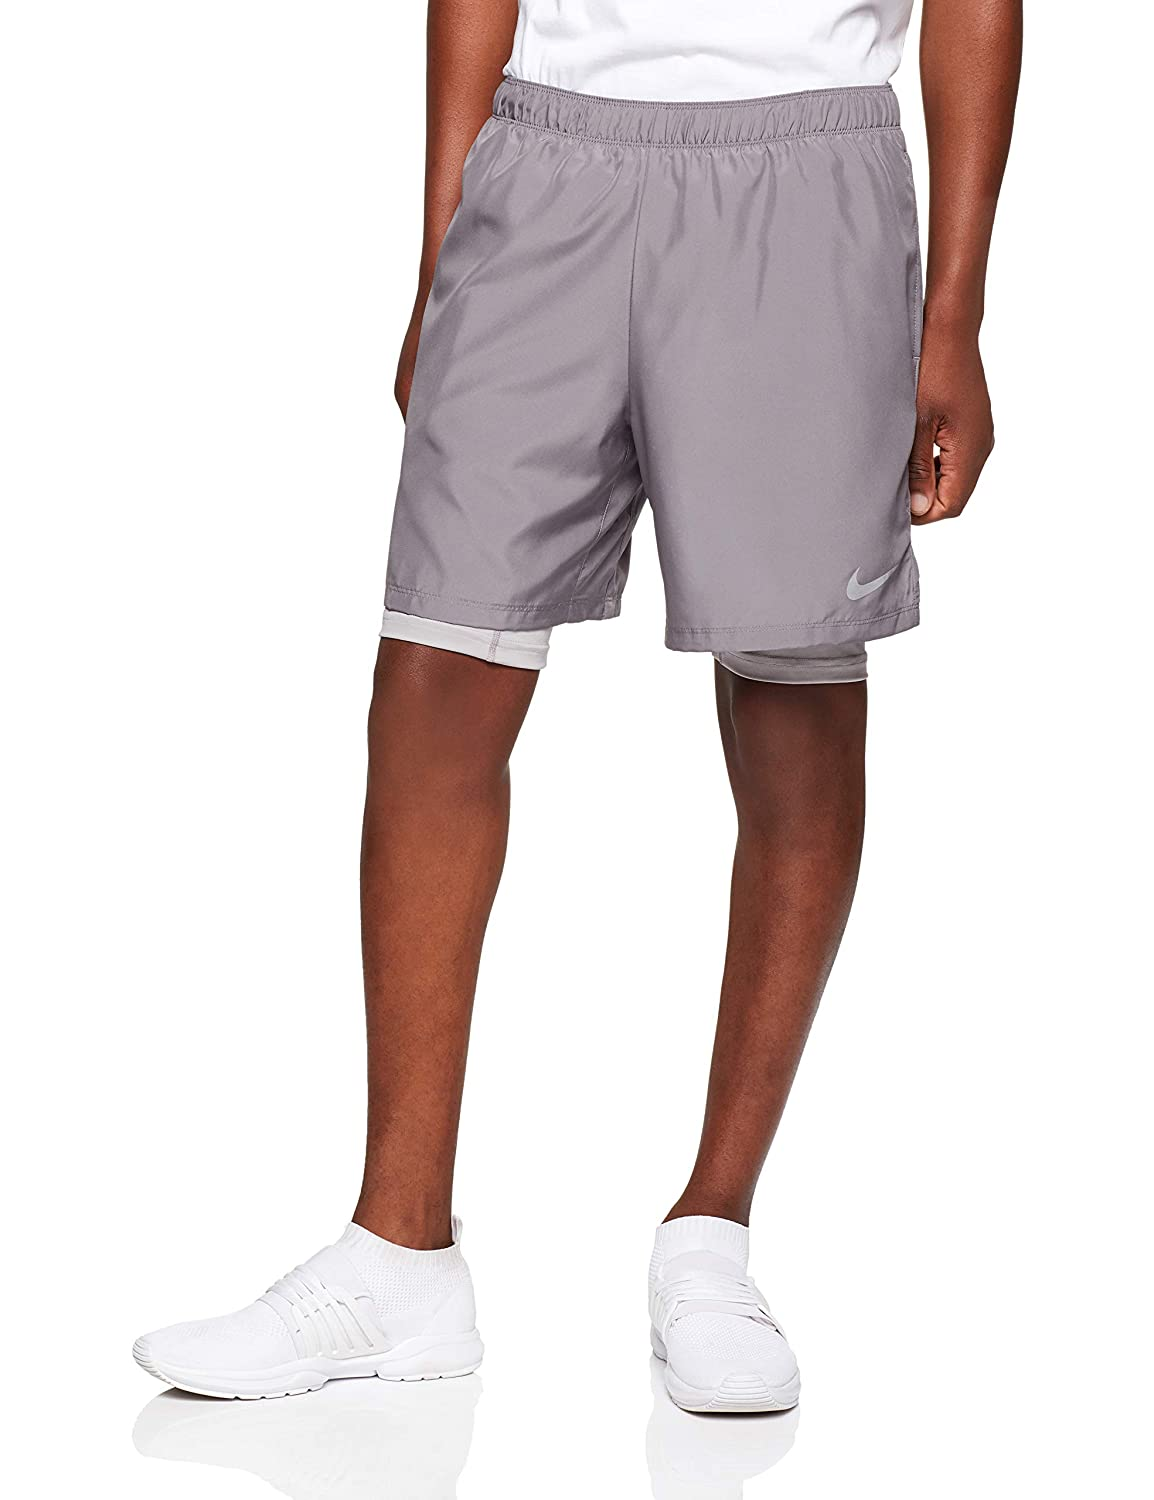 c17b3bf87ee NIKE Men s Challenger 2 in 1 Shorts at Amazon Men s Clothing store